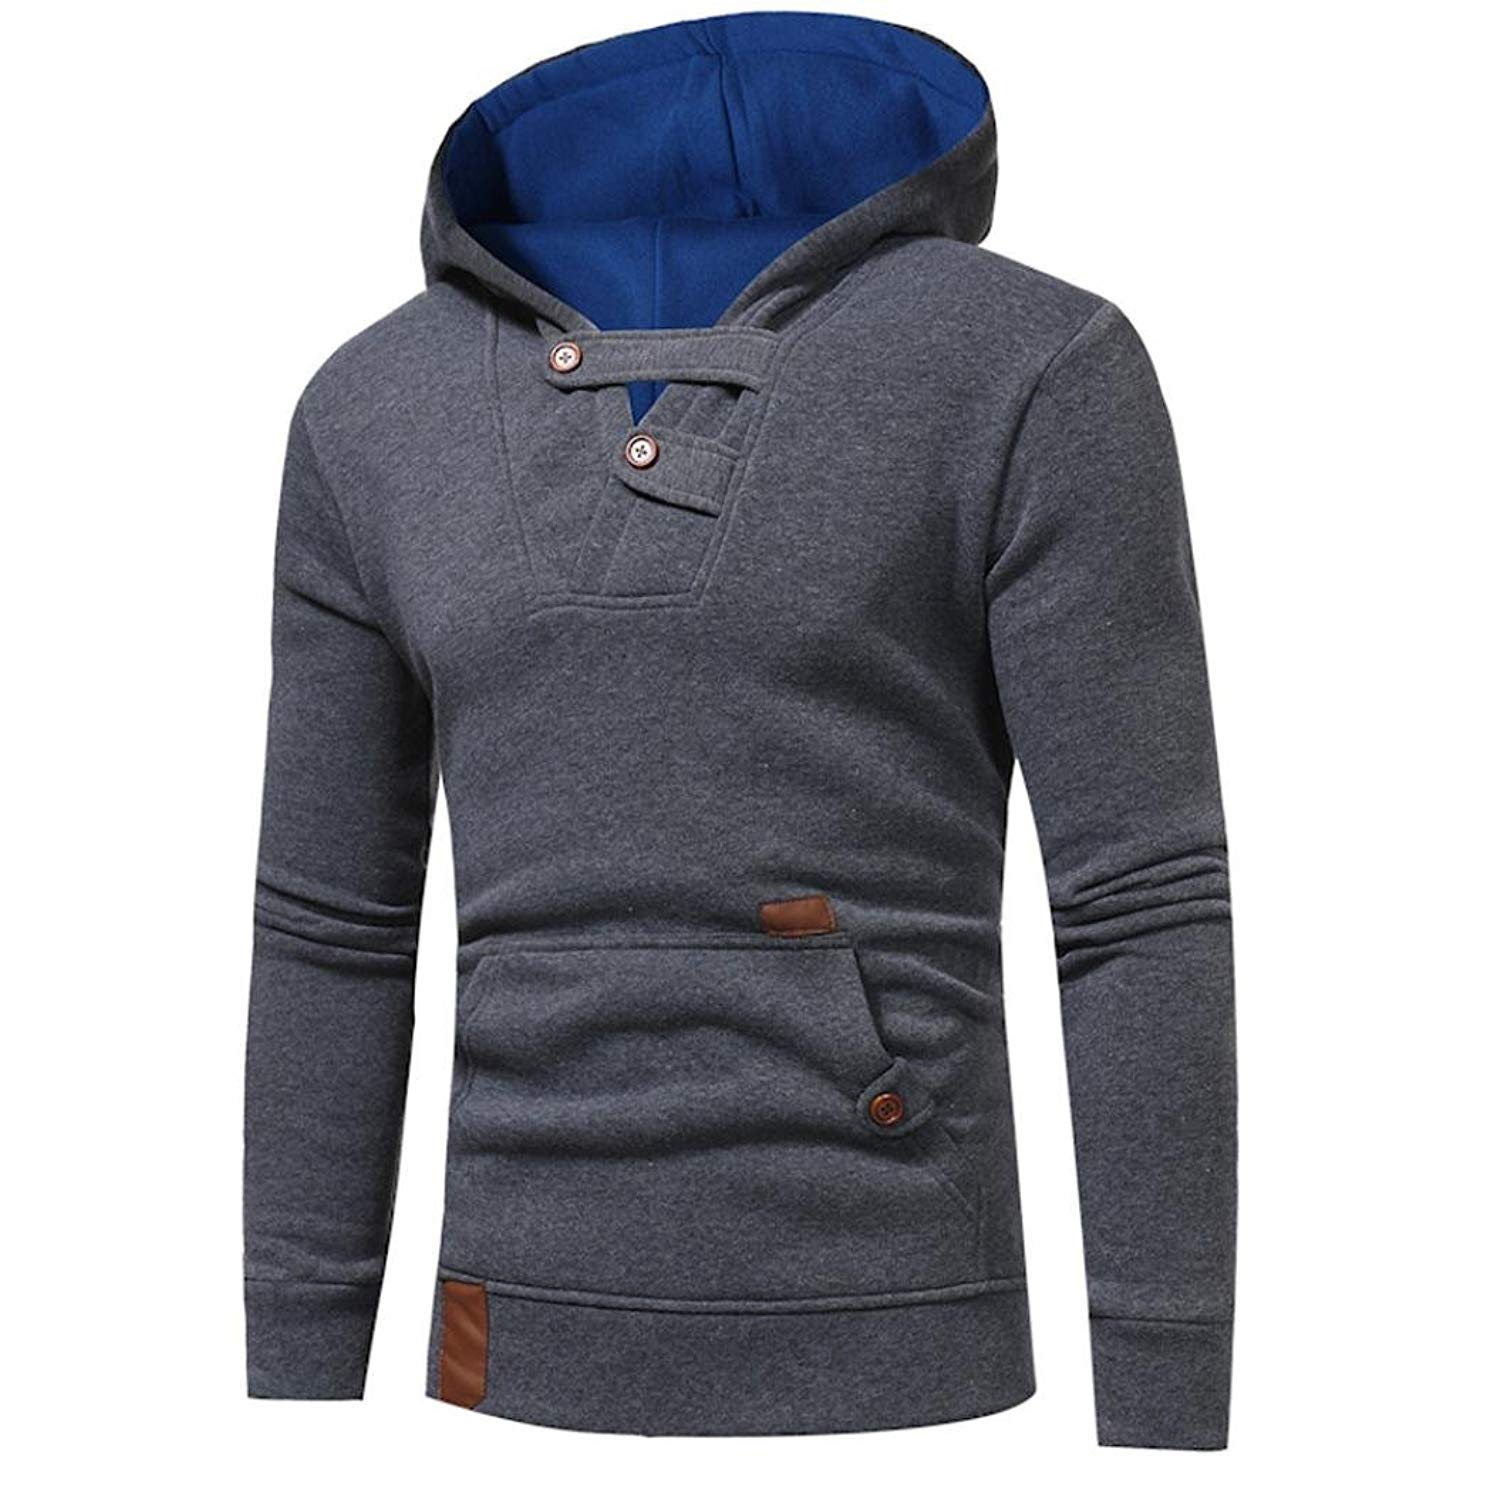 Hot Sale!Mens Hoodies,Bokeley Fashion Long Sleeve Oblique Zipper Pullover Hooded Sweatshirt Kangaroo Pocket Jacket Coat Outwear